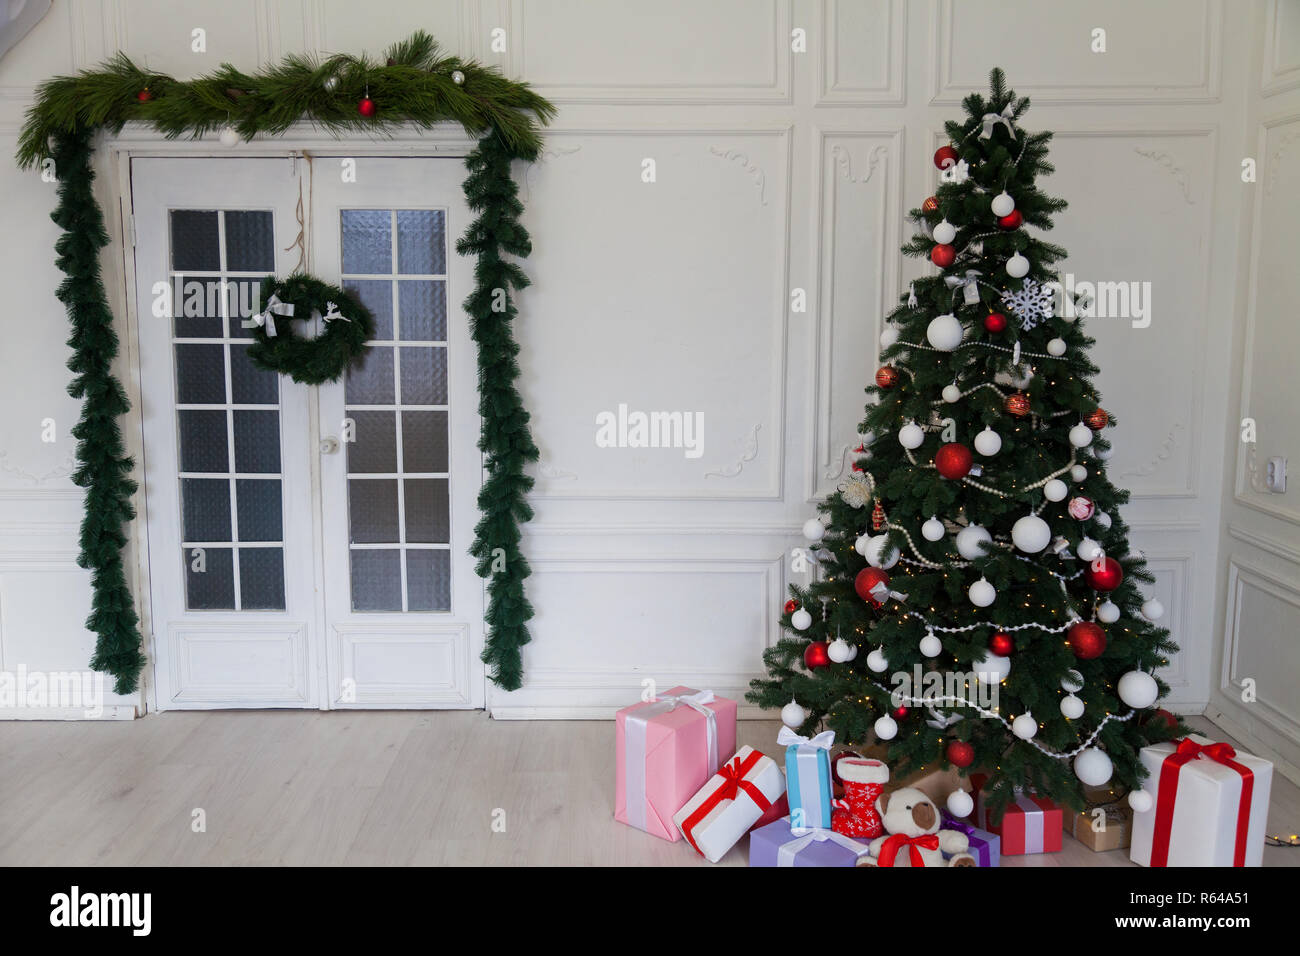 Christmas Background Christmas Decoration Garland With Lights Gifts Toys Snowflakes Christmas Tree Holiday Interior Stock Photo Alamy